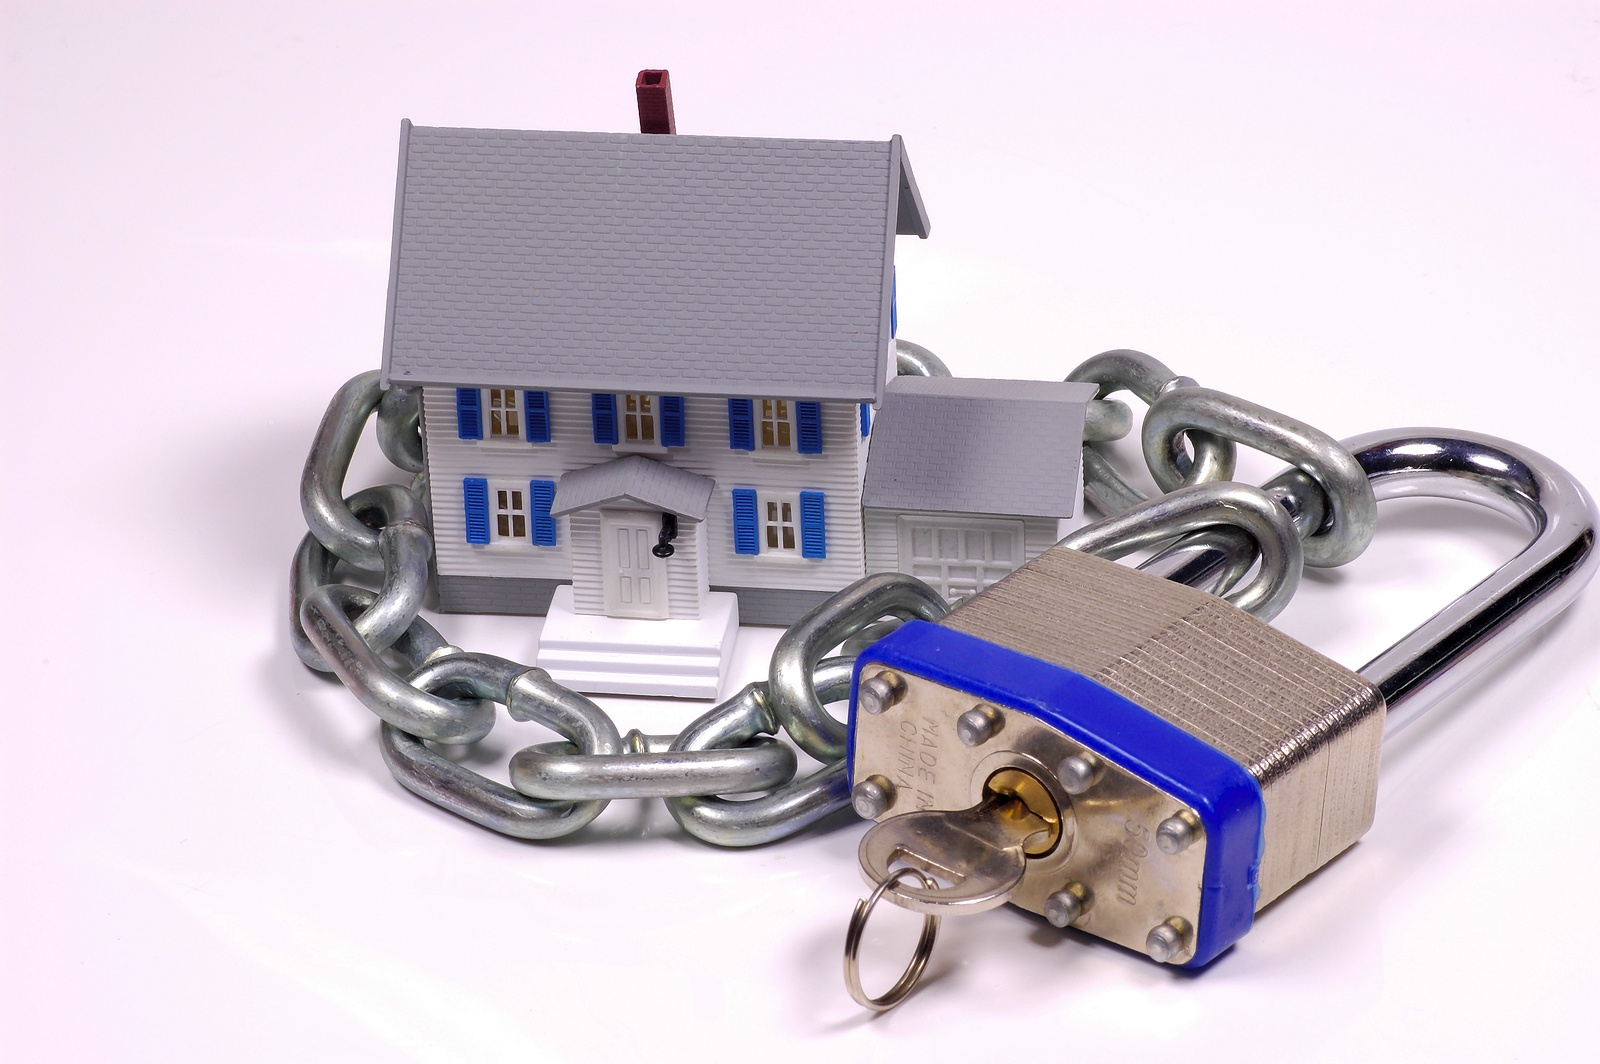 bigstock-Home-Security-106221.jpg